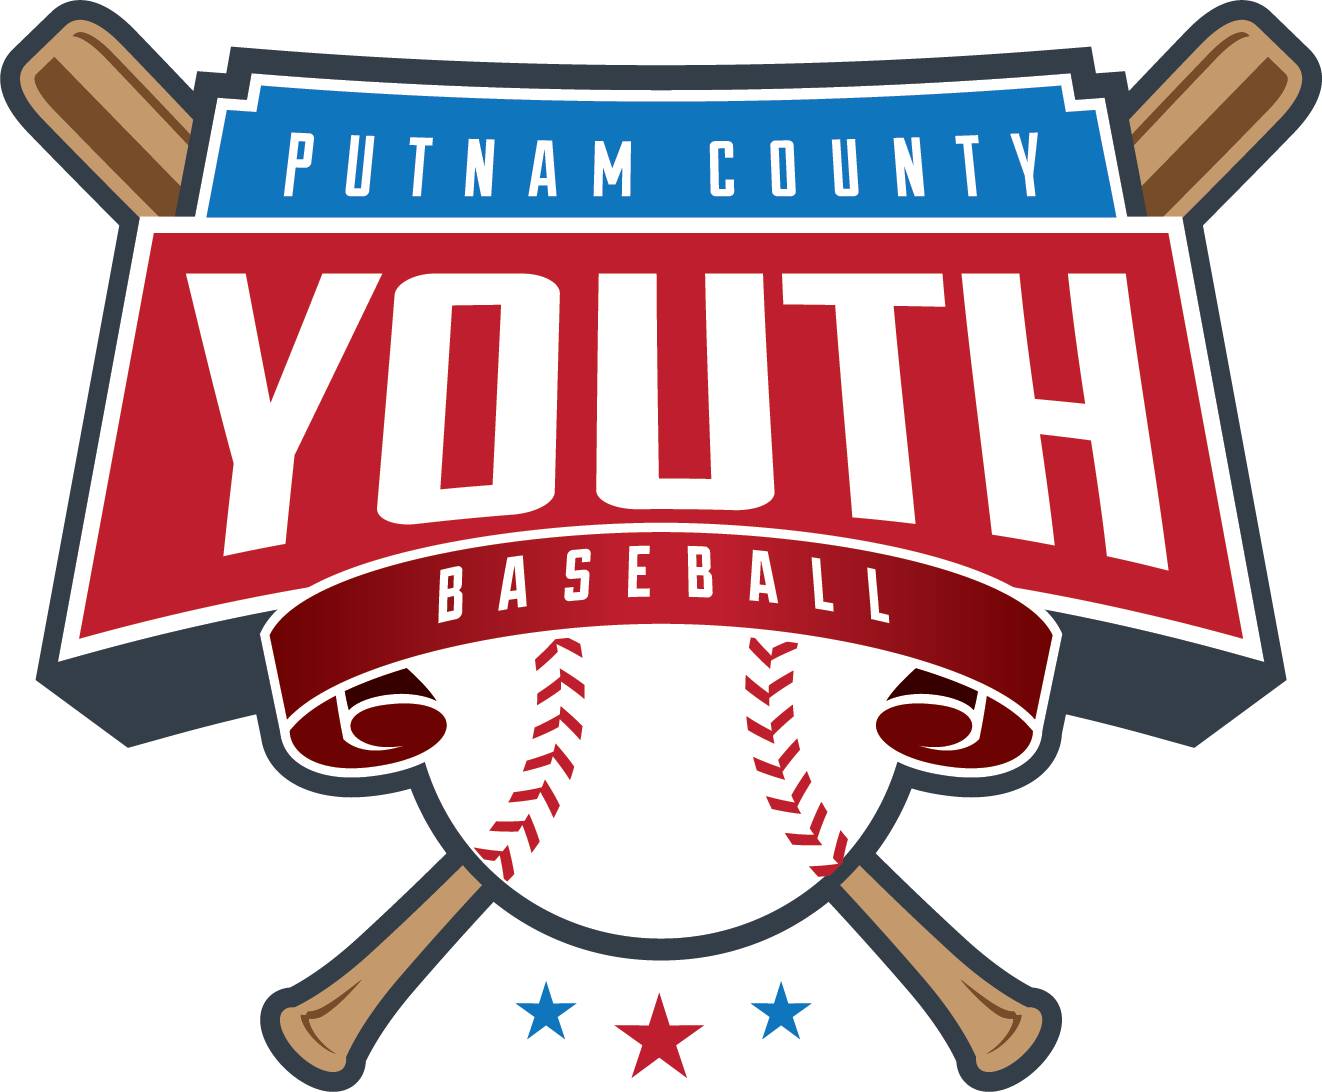 Kid baseball pitcher clipart image free Home of the Putnam County Youth Baseball League image free